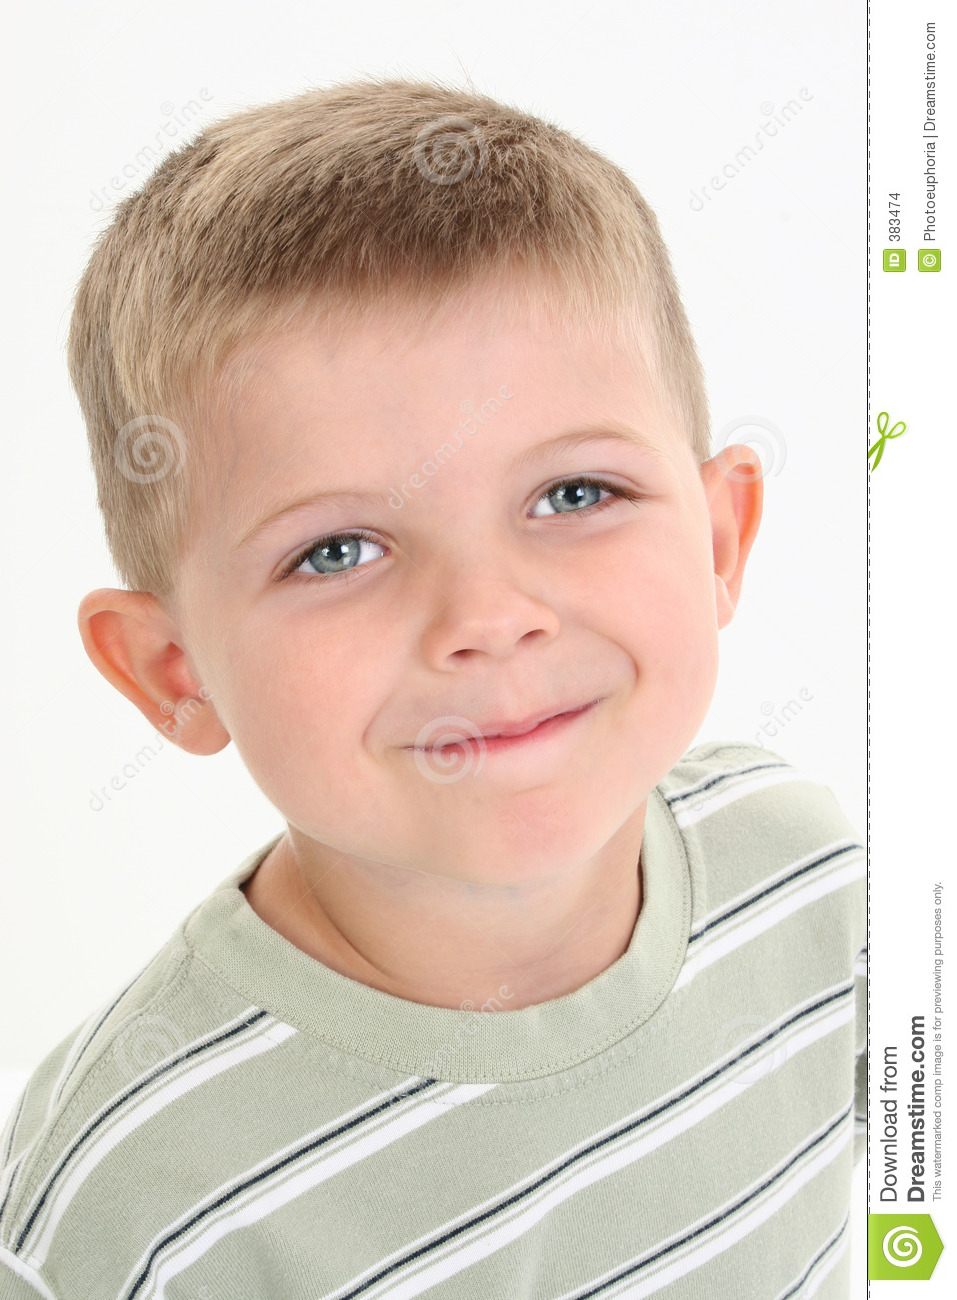 Adorable Four Year Boy With Big Blue Eyes Stock Image: Adorable Four Year Old Caucasian Boy Stock Images